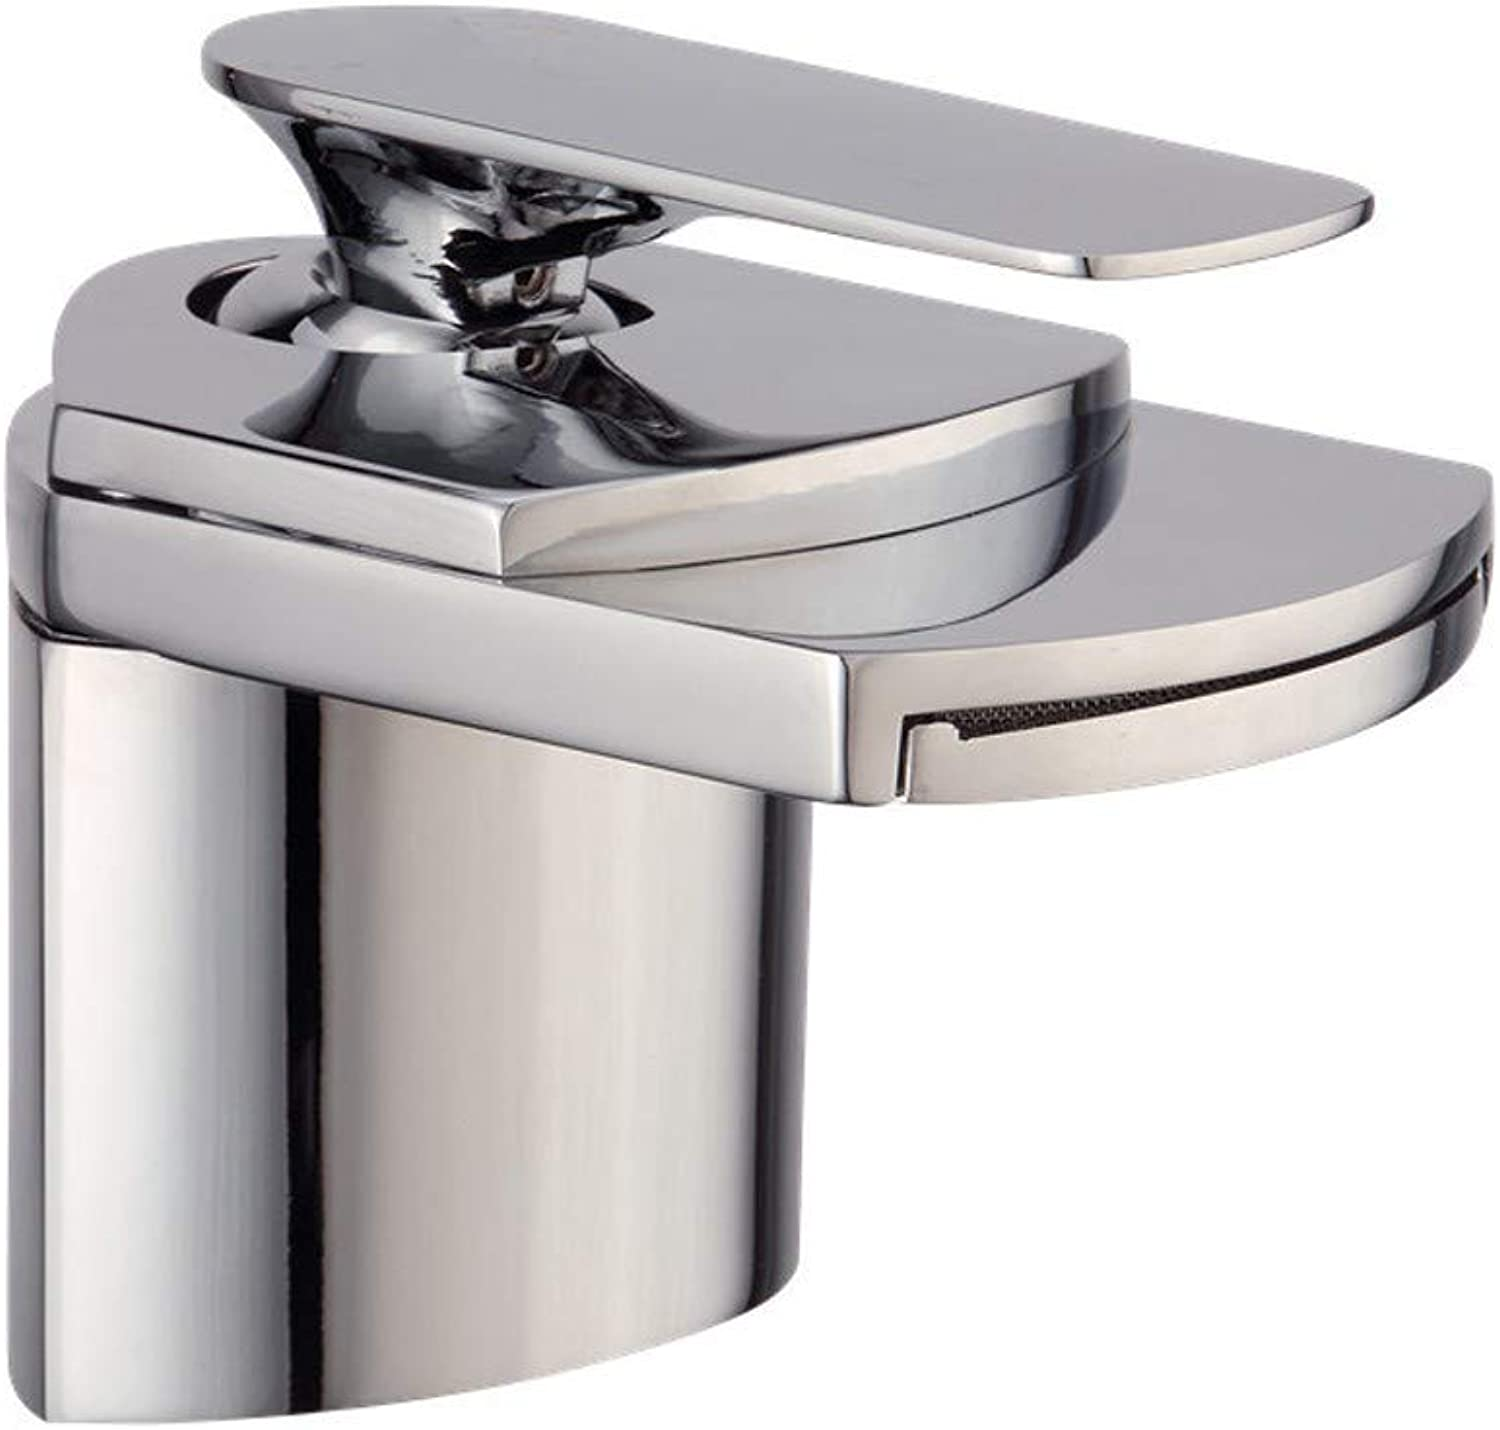 Bathroom accessories, easy to use and user-friendl Faucet, All Copper Hot And Cold Bathroom Washbasin Mixer Waterfall Duckbill Single Hole Single Tap XIAHE